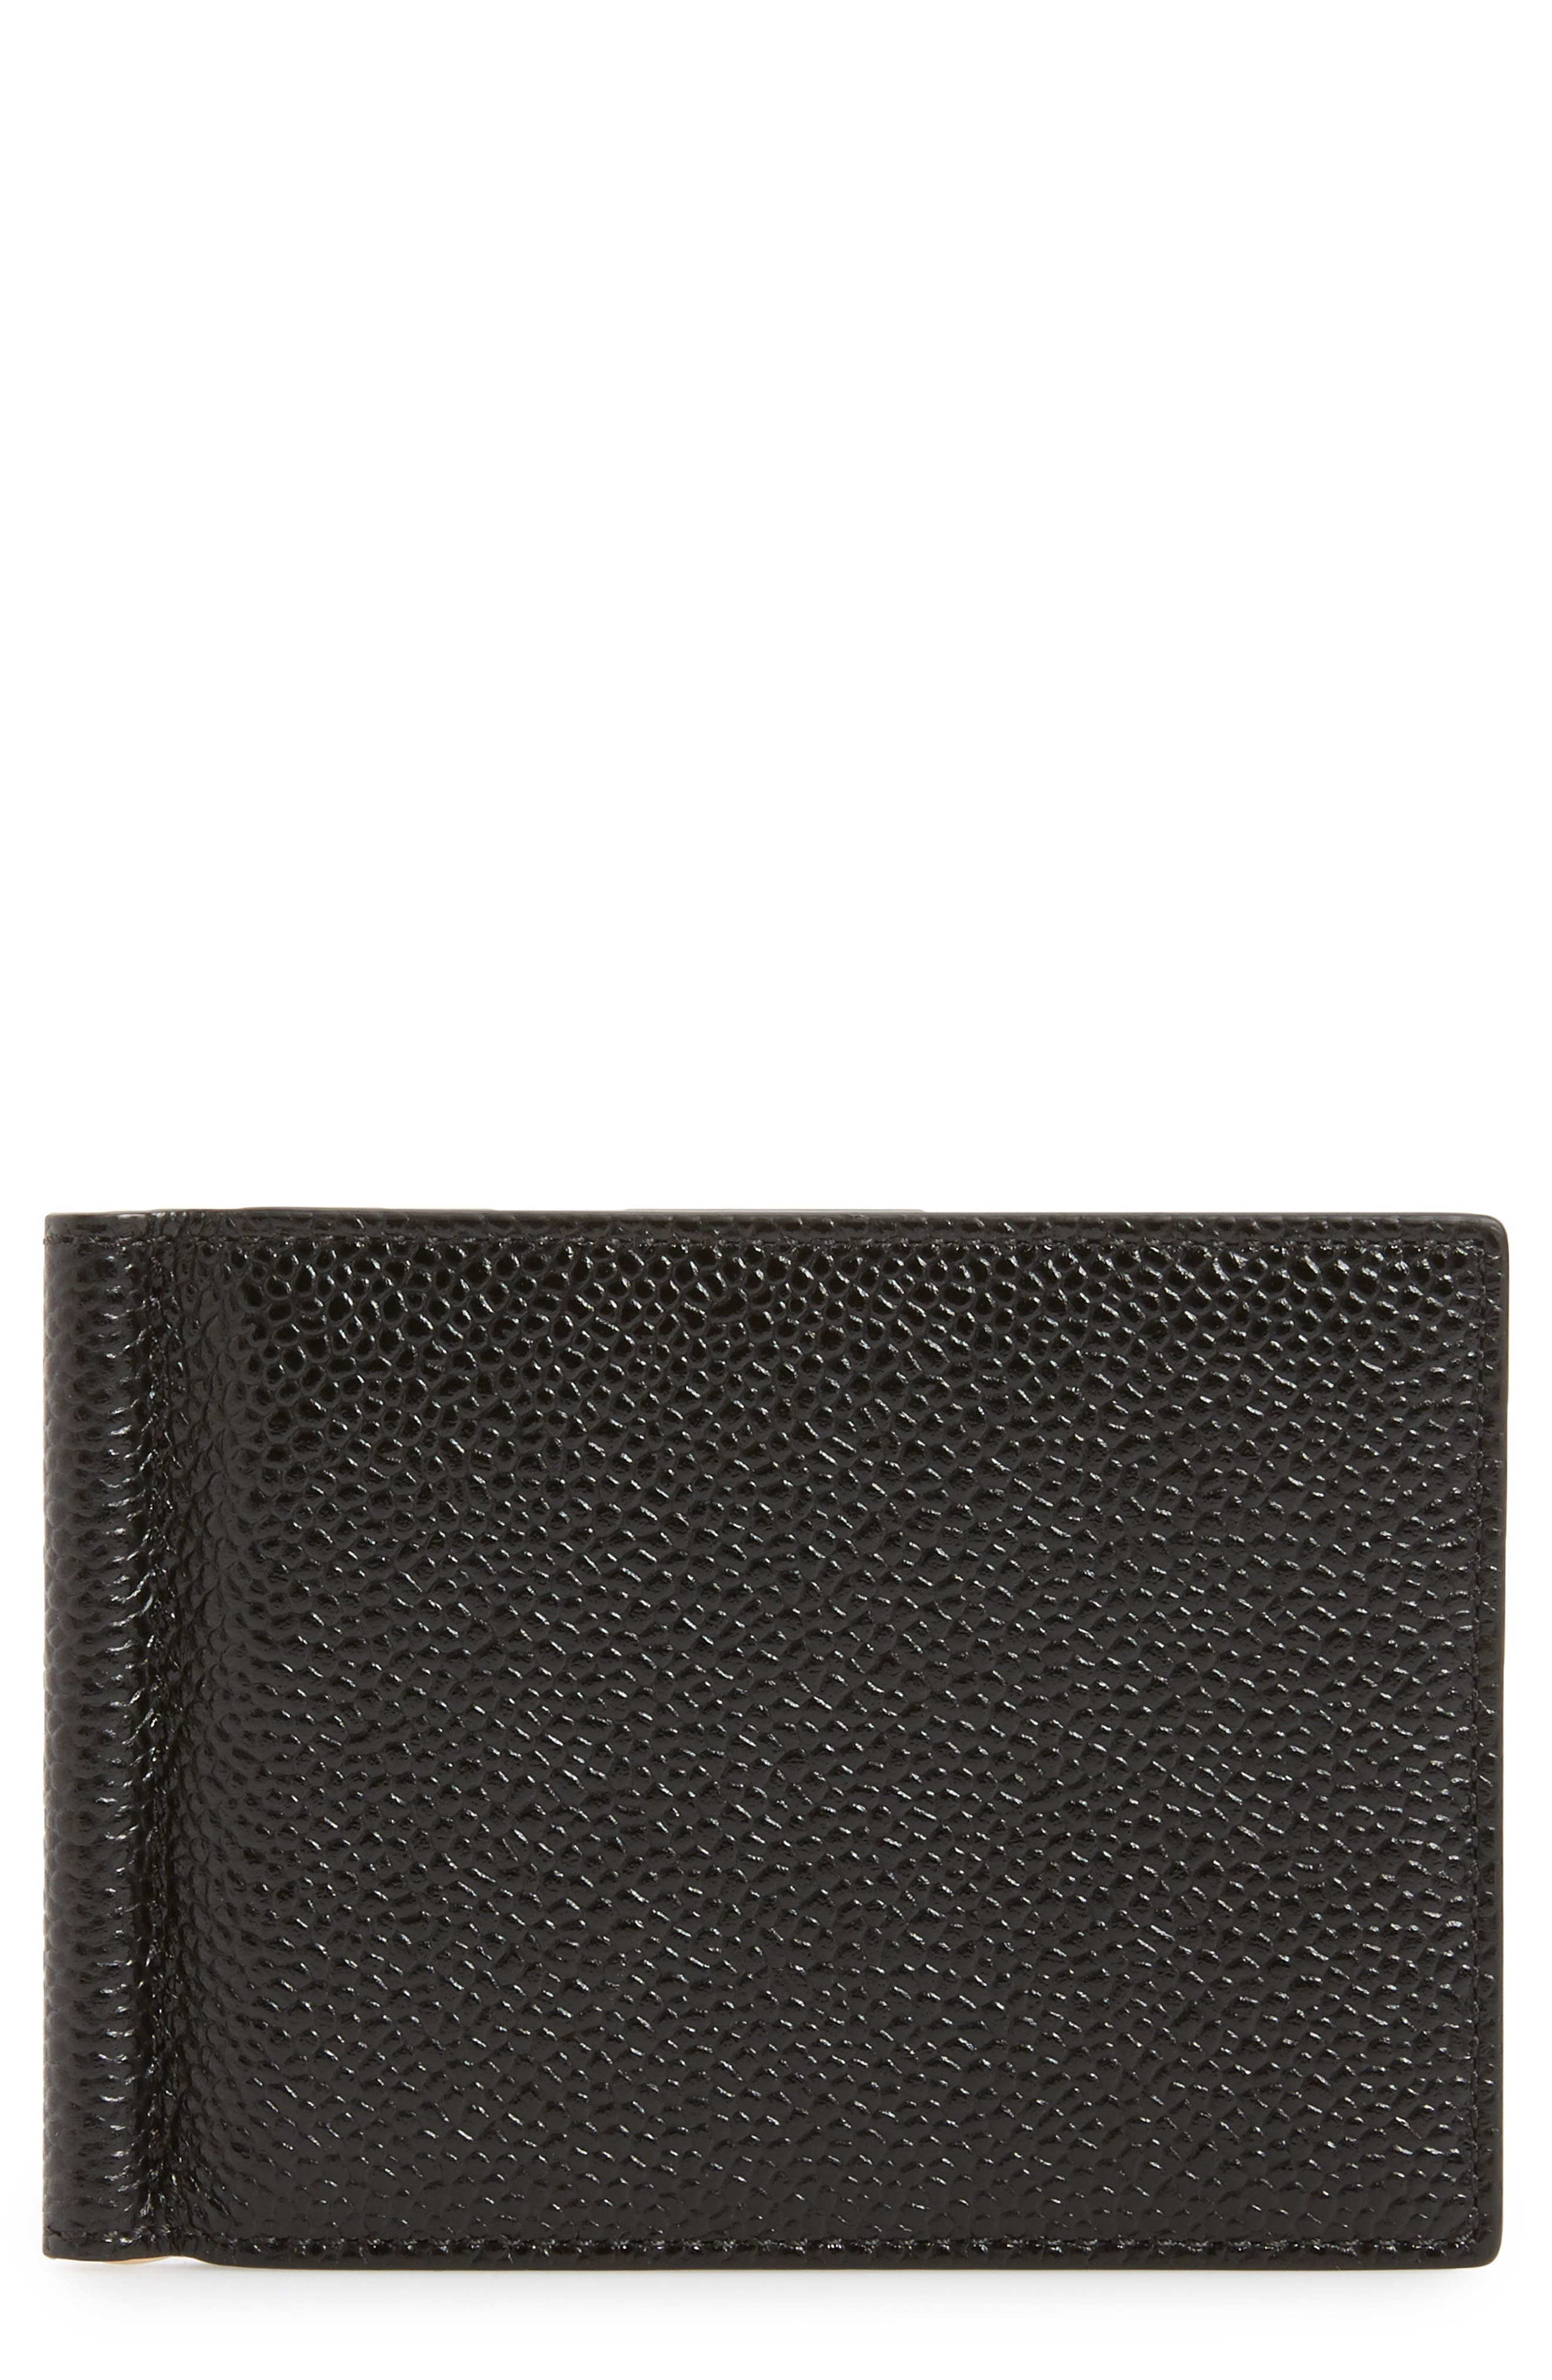 Thom Browne Pebble Grained Leather Card Case with Money Clip